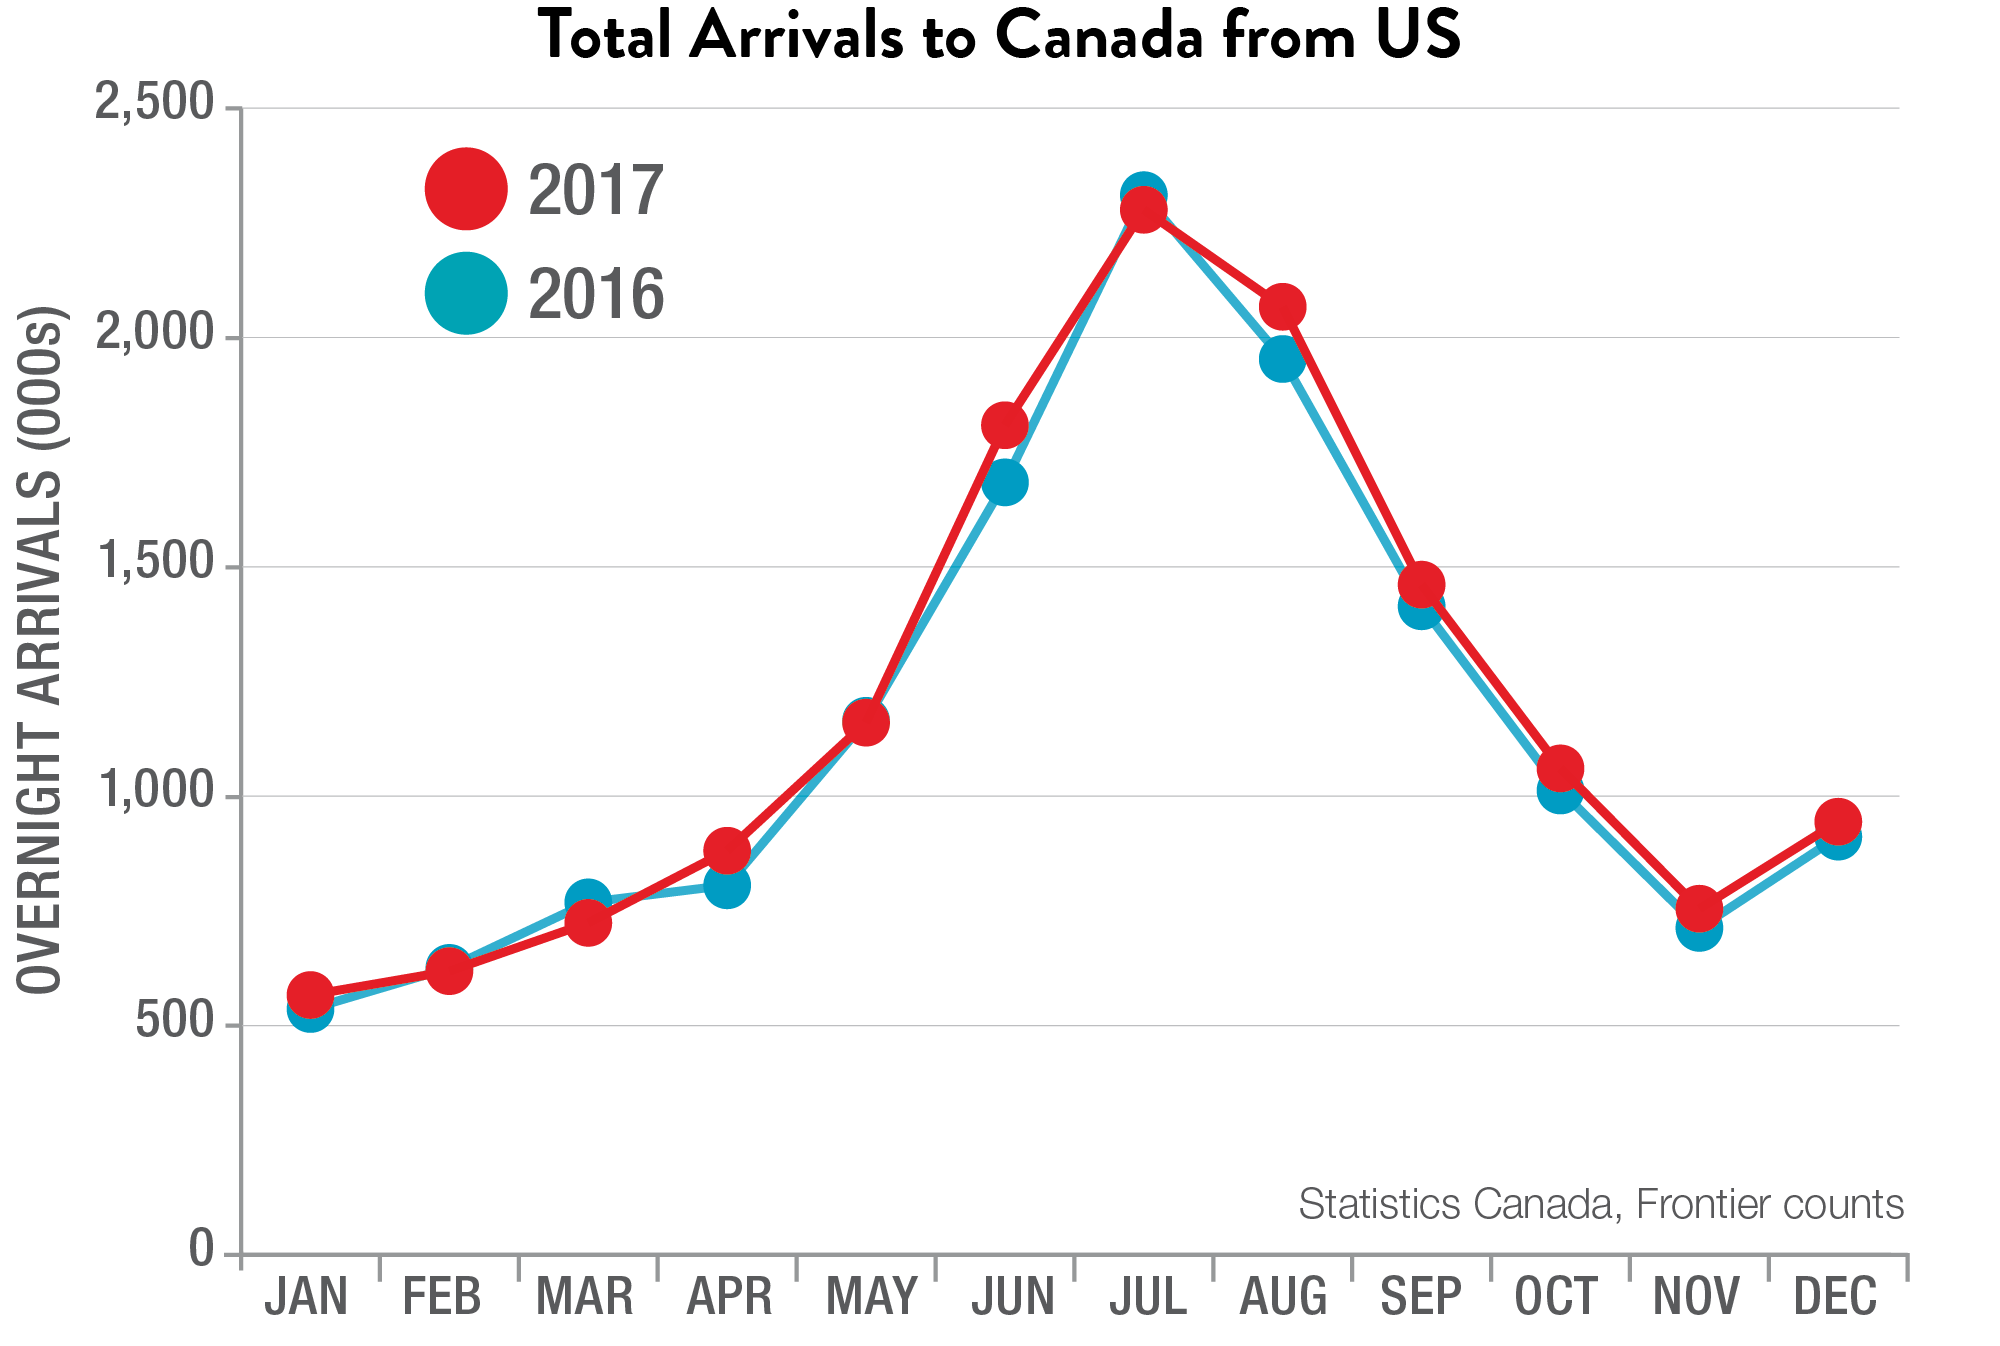 Total Arrivals to Canada from the US